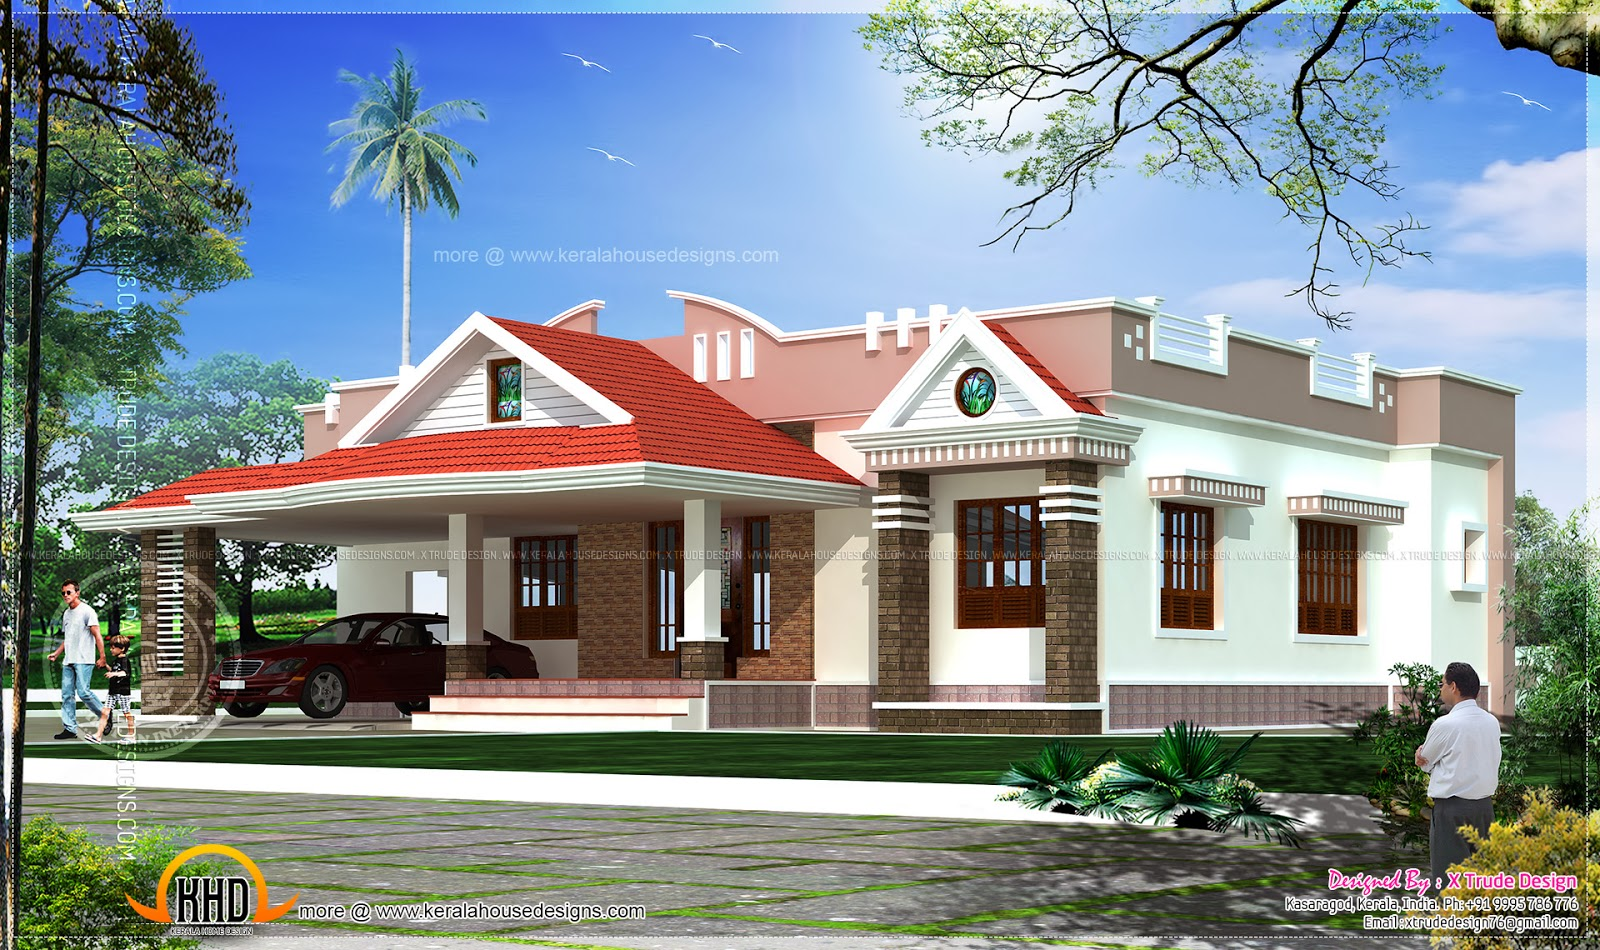 Single storied 2 bedroom house elevation kerala home for 2 bedroom house designs in india